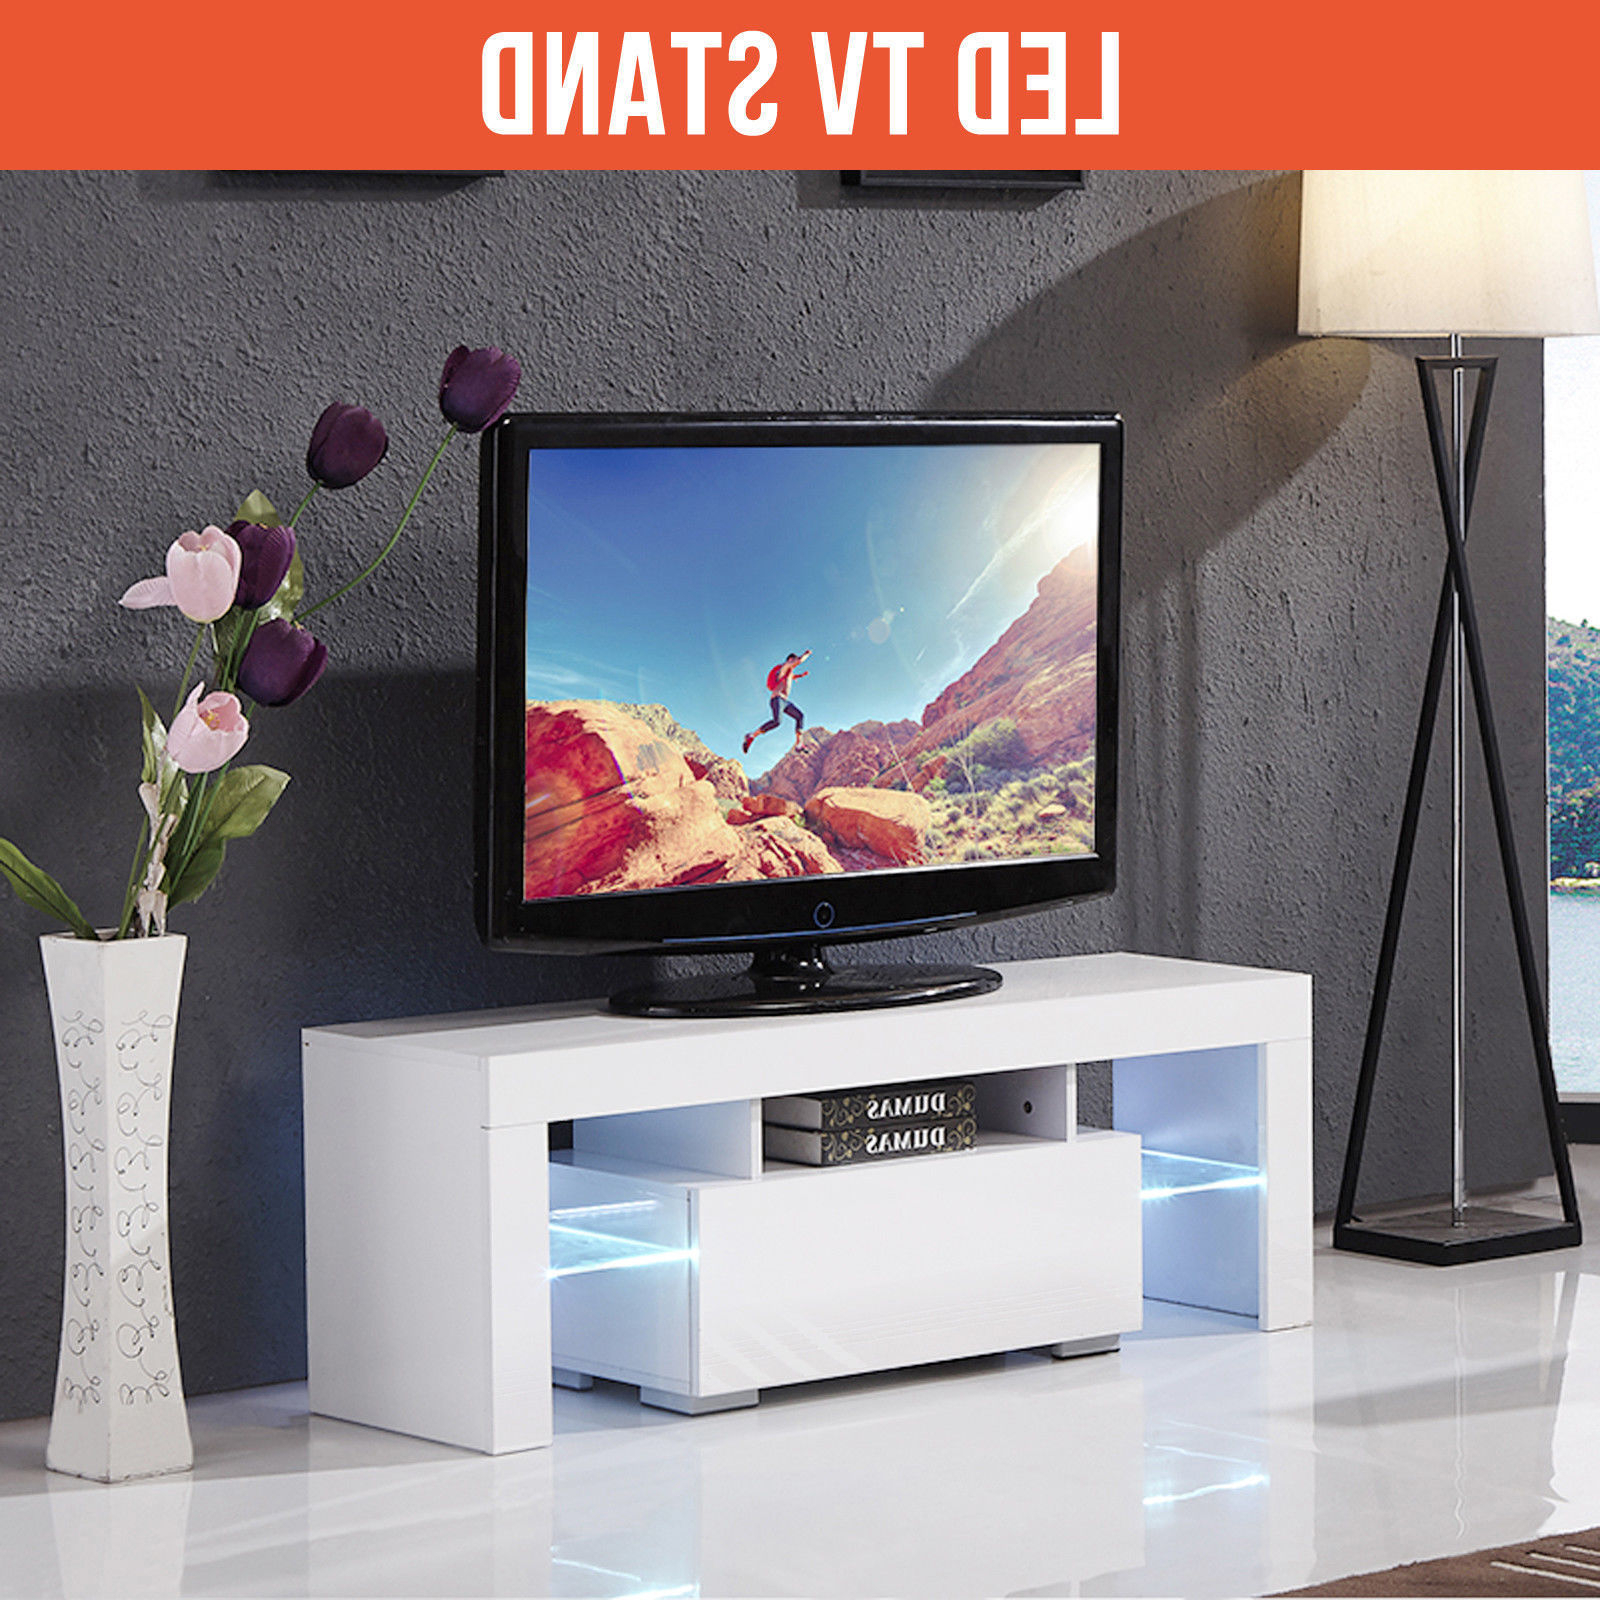 2018 Ktaxon Modern Led Tv Unit Cabinet Stand Shelf Table Free Within 57'' Led Tv Stands Cabinet (View 4 of 10)